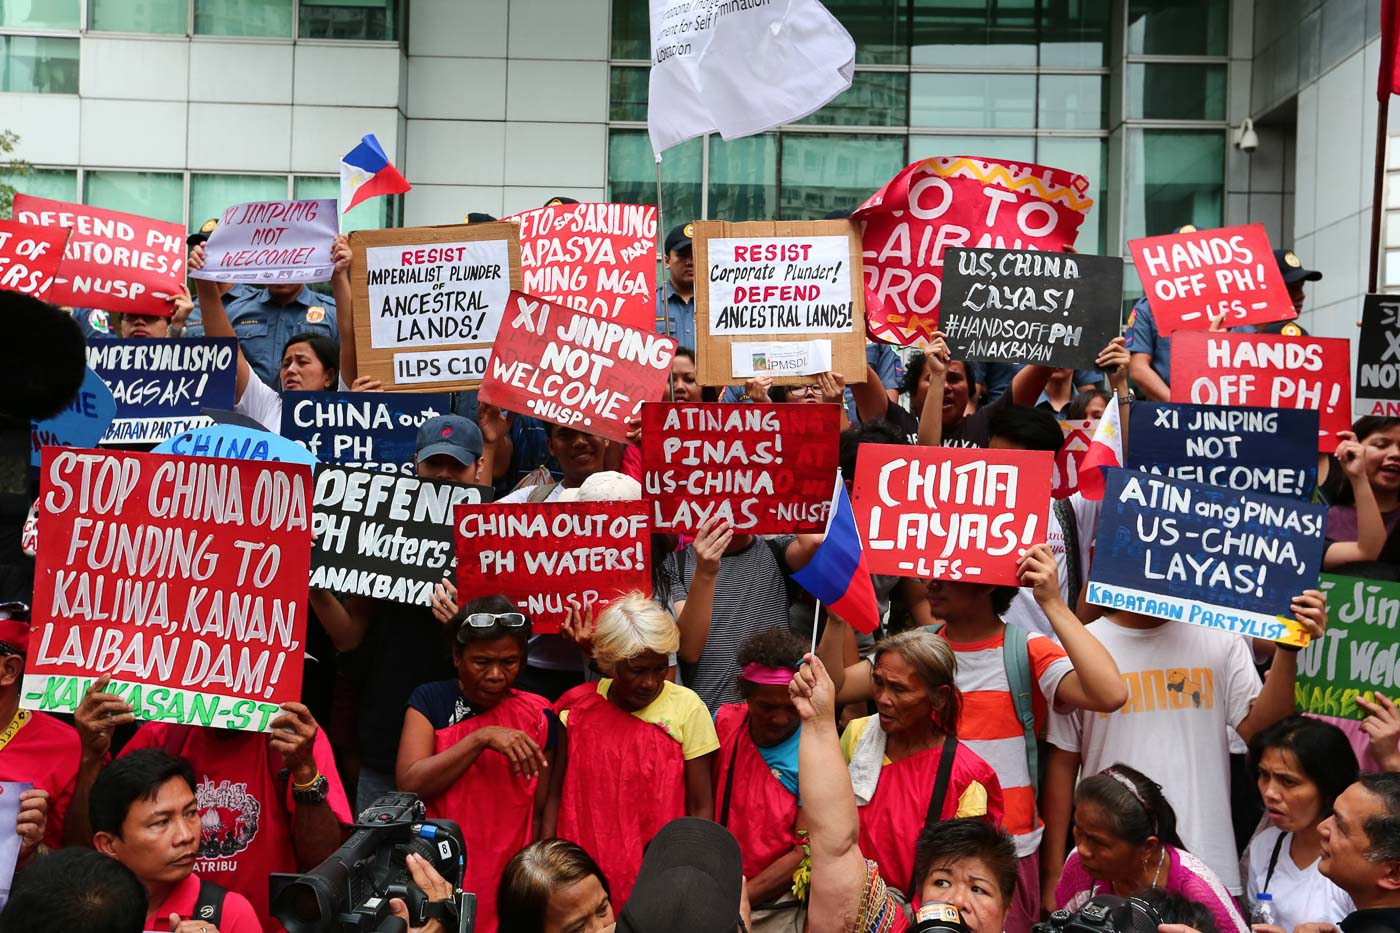 STRONG STATEMENTS. People carry signs to show their strong objection to possible deals and plans with China during the protest at the Chinese Consulate on the day of Xi Jinping's arrival in the Philippines. Photo by Jire Carreon/Rappler